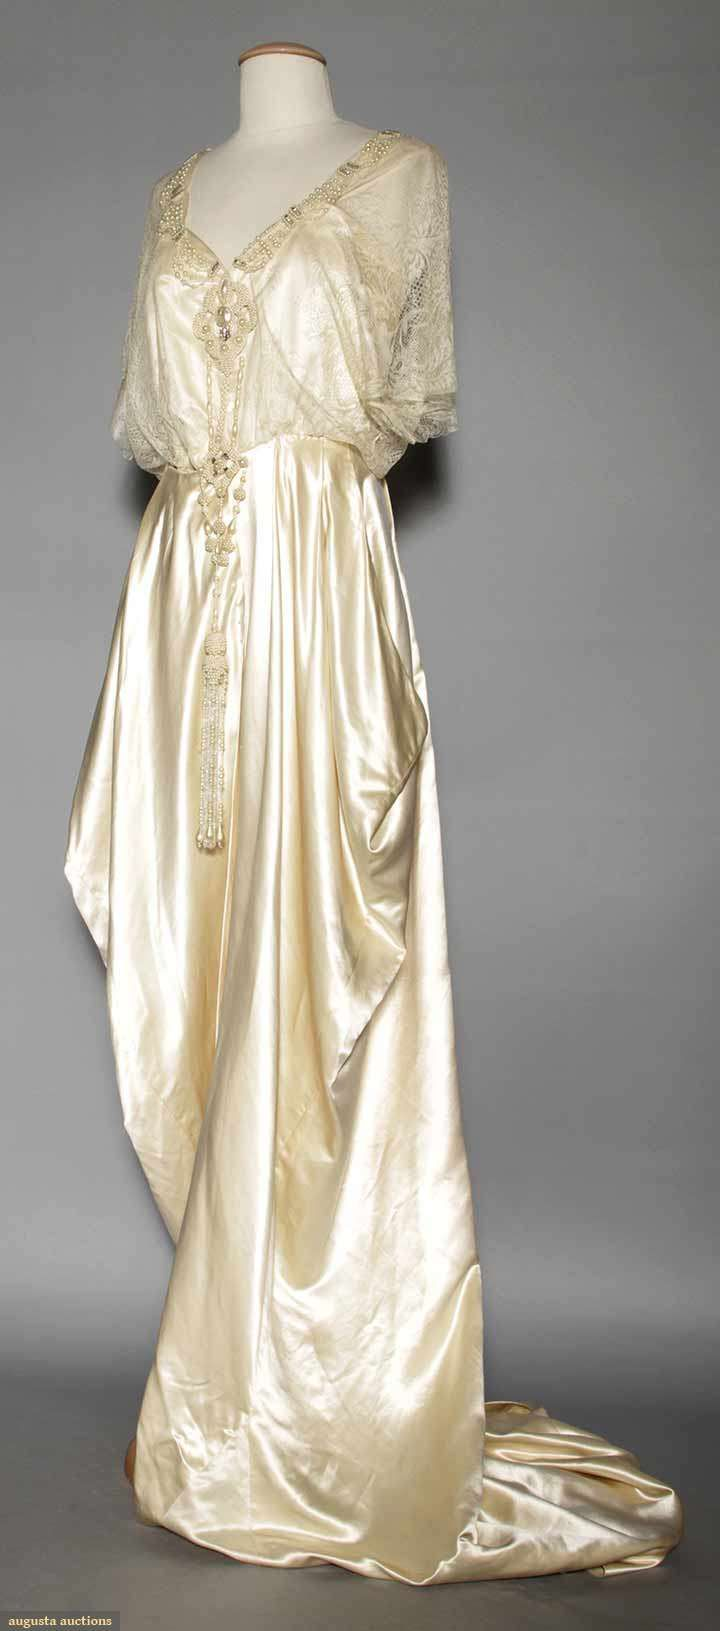 IVORY SILK SATIN WEDDING GOWN, 1912 Silk charmeuse trained gown, lace bodice trimmed w/ crystal beads & pearls.